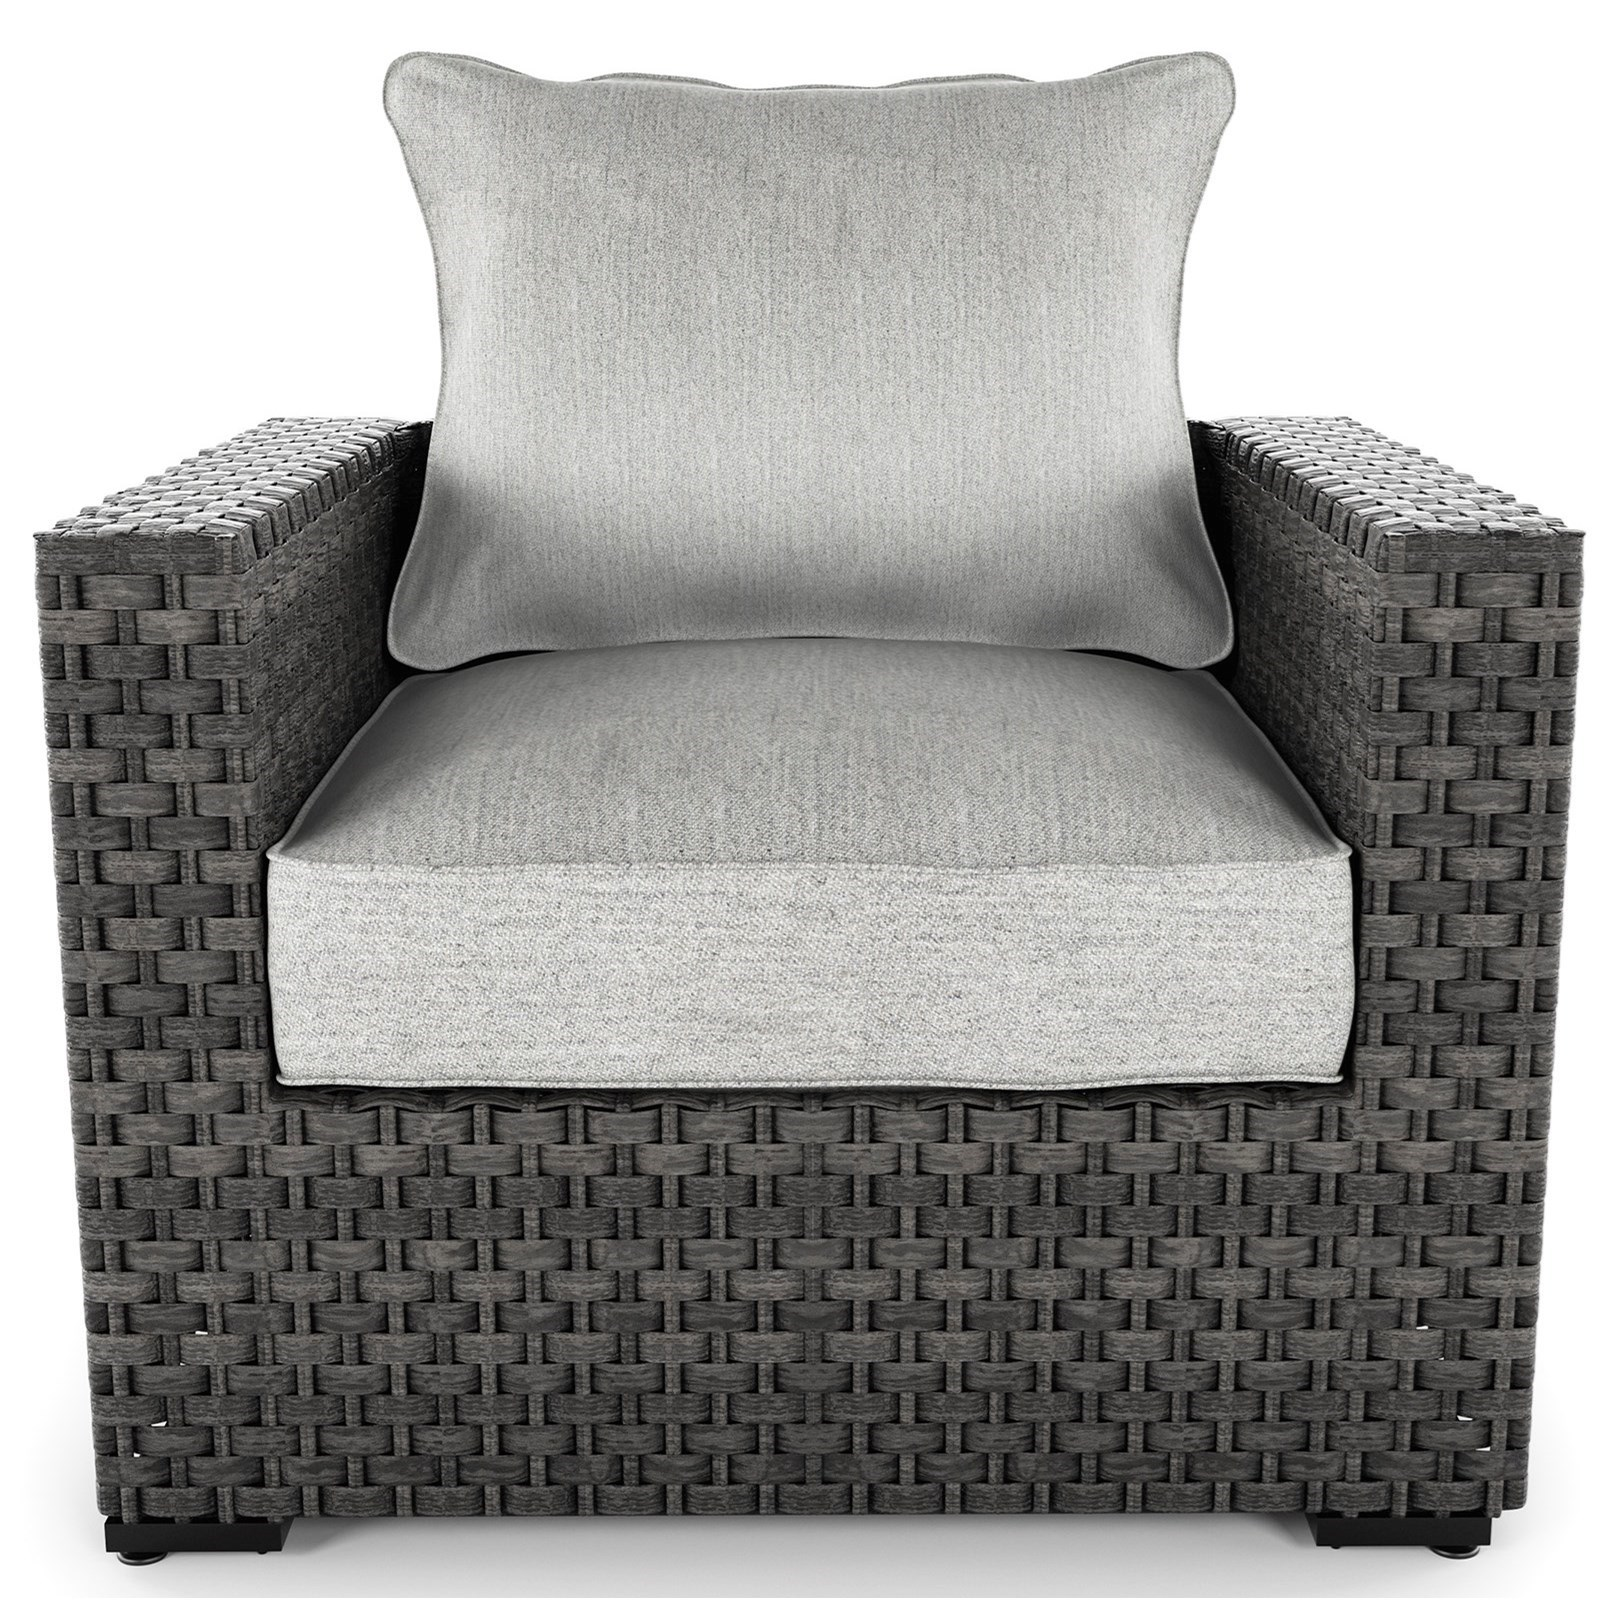 Signature Design by Ashley Spring Dew Lounge Chair with Cushion - Item Number: P453-820